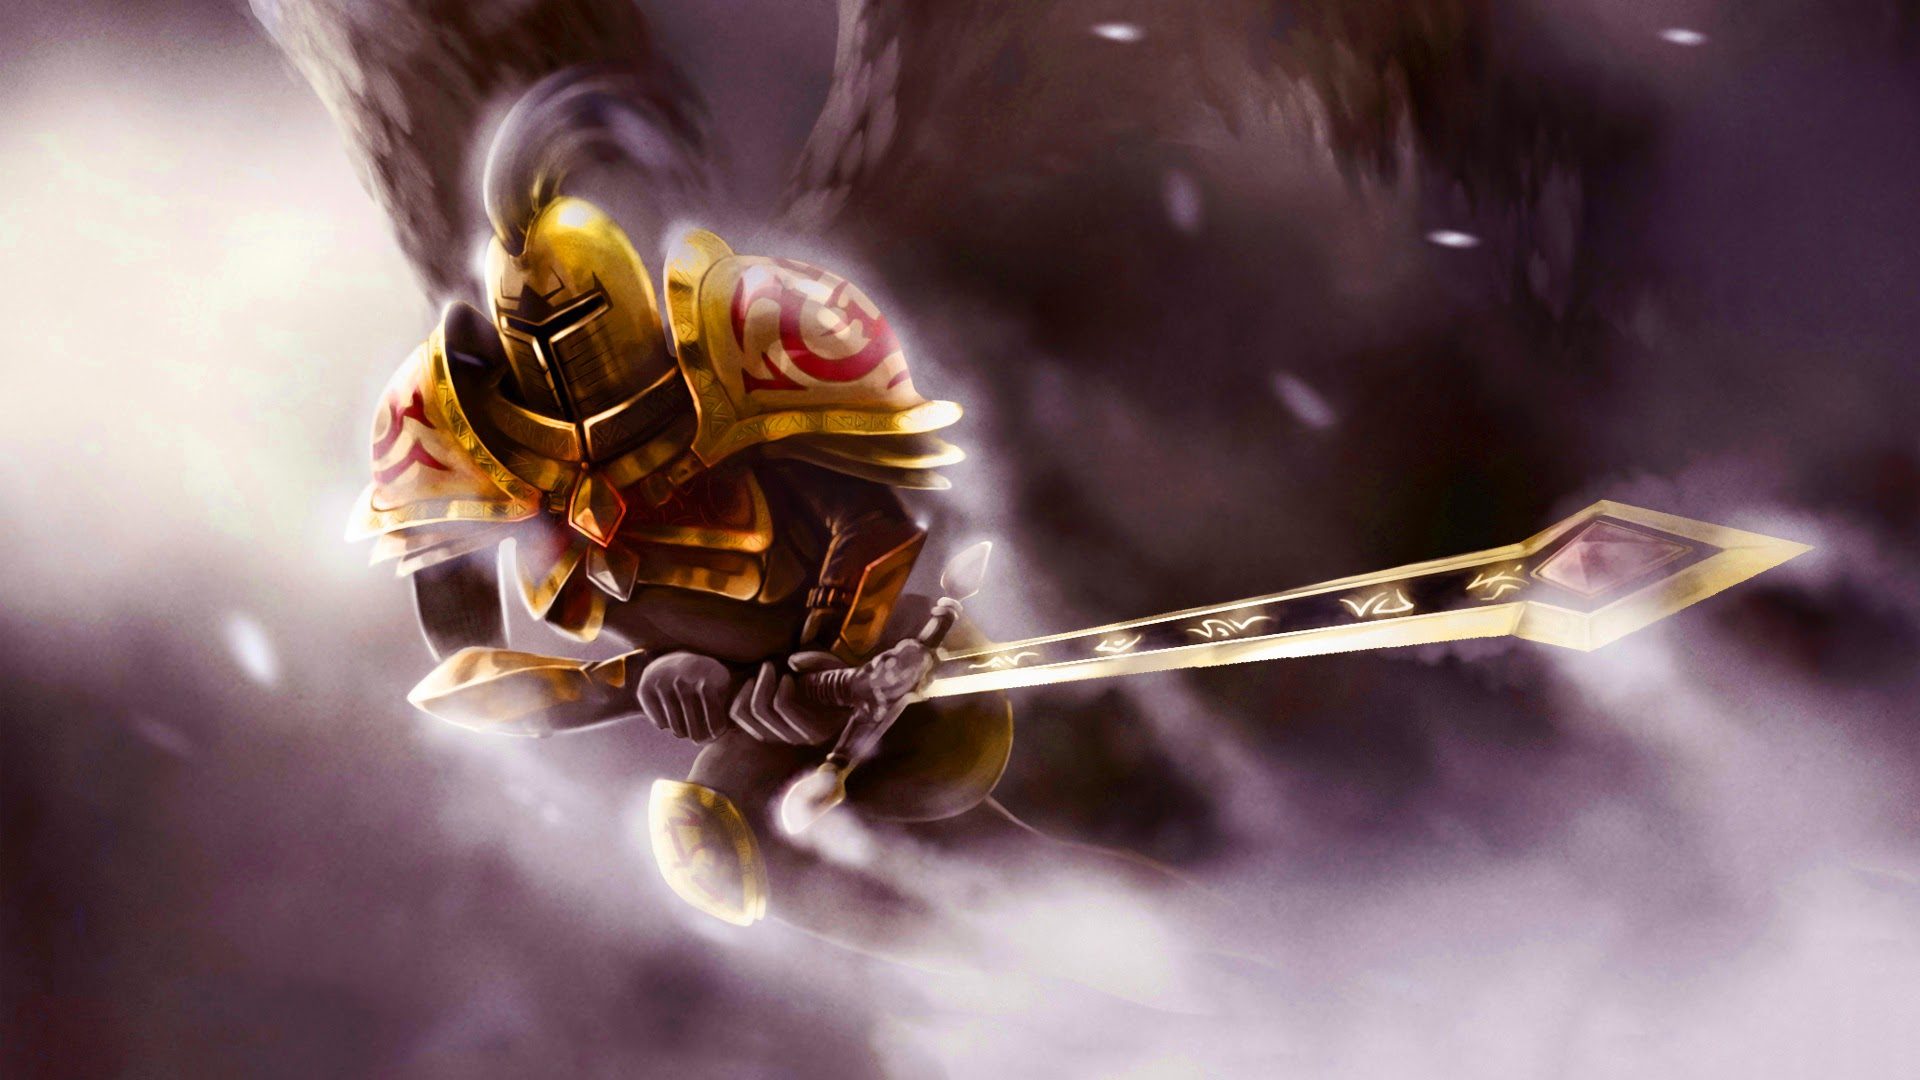 Gold Knight Kayle LoL Skin 9g